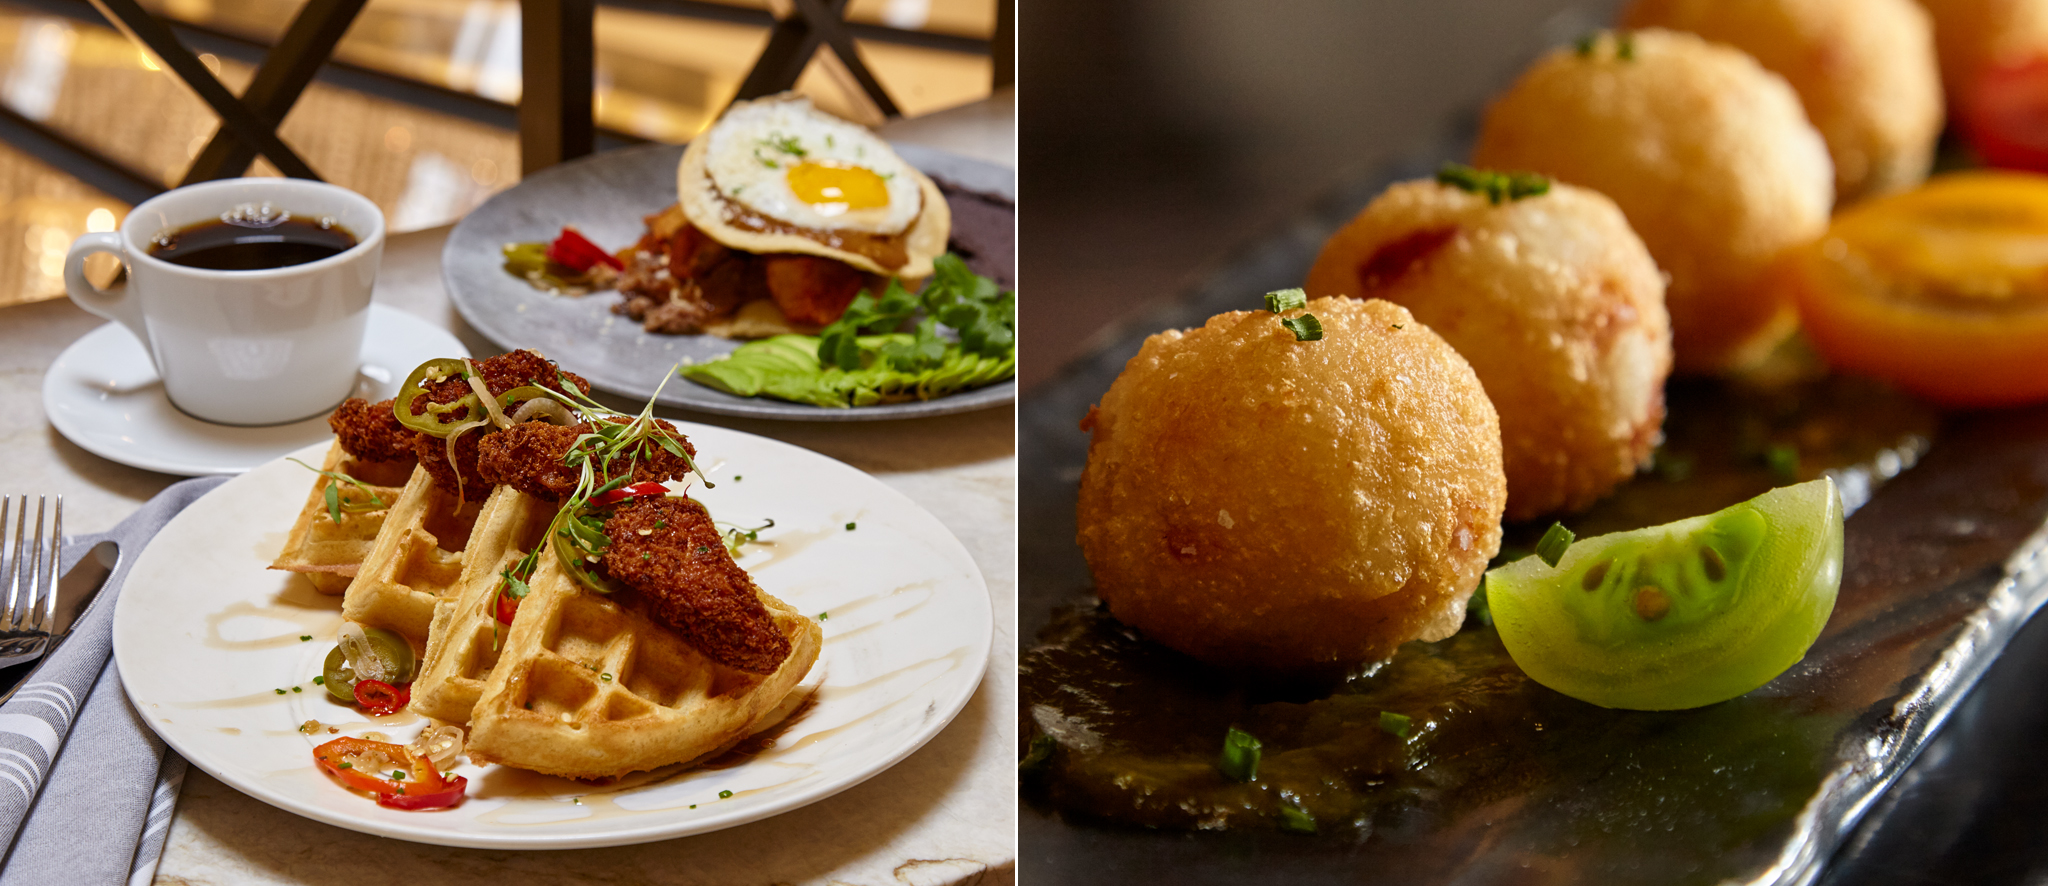 """(Left) Aqimero chicken and waffles brunch (Right) Aqimero fried appetizer photography"